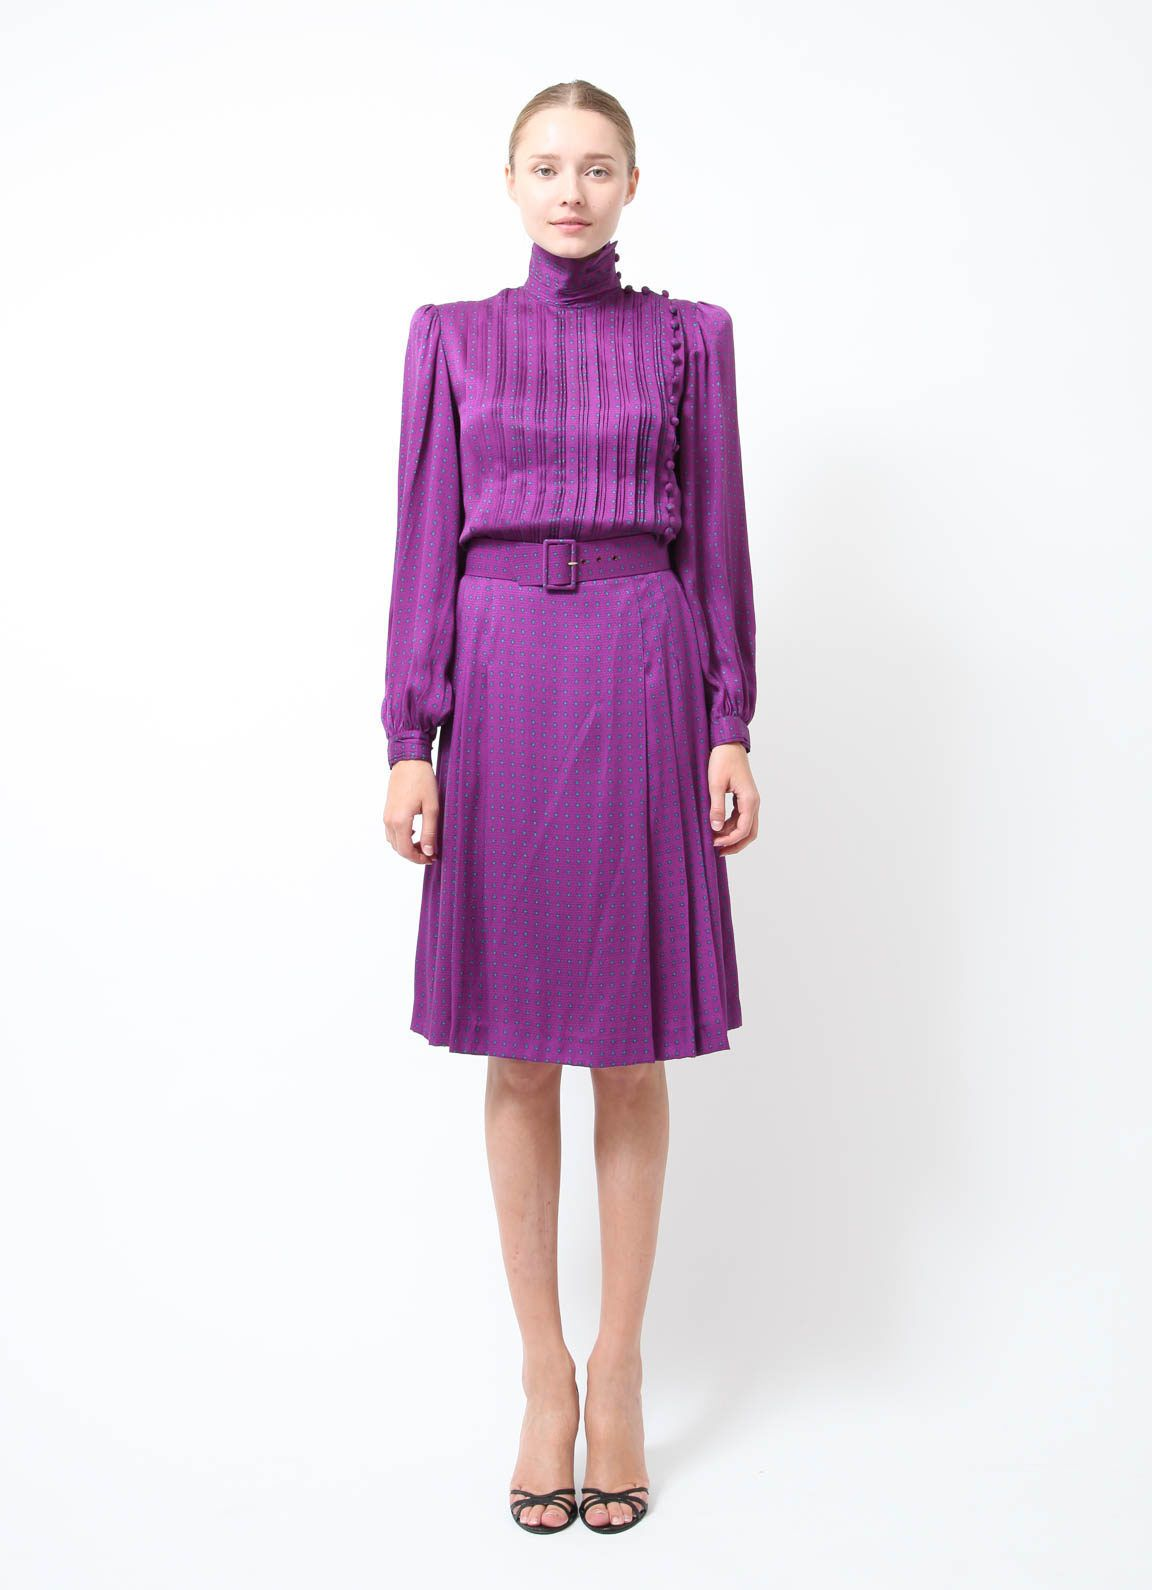 Jean-Louis Scherrer | Vintage Haute Couture Dress | Order this item on RESEE.com |